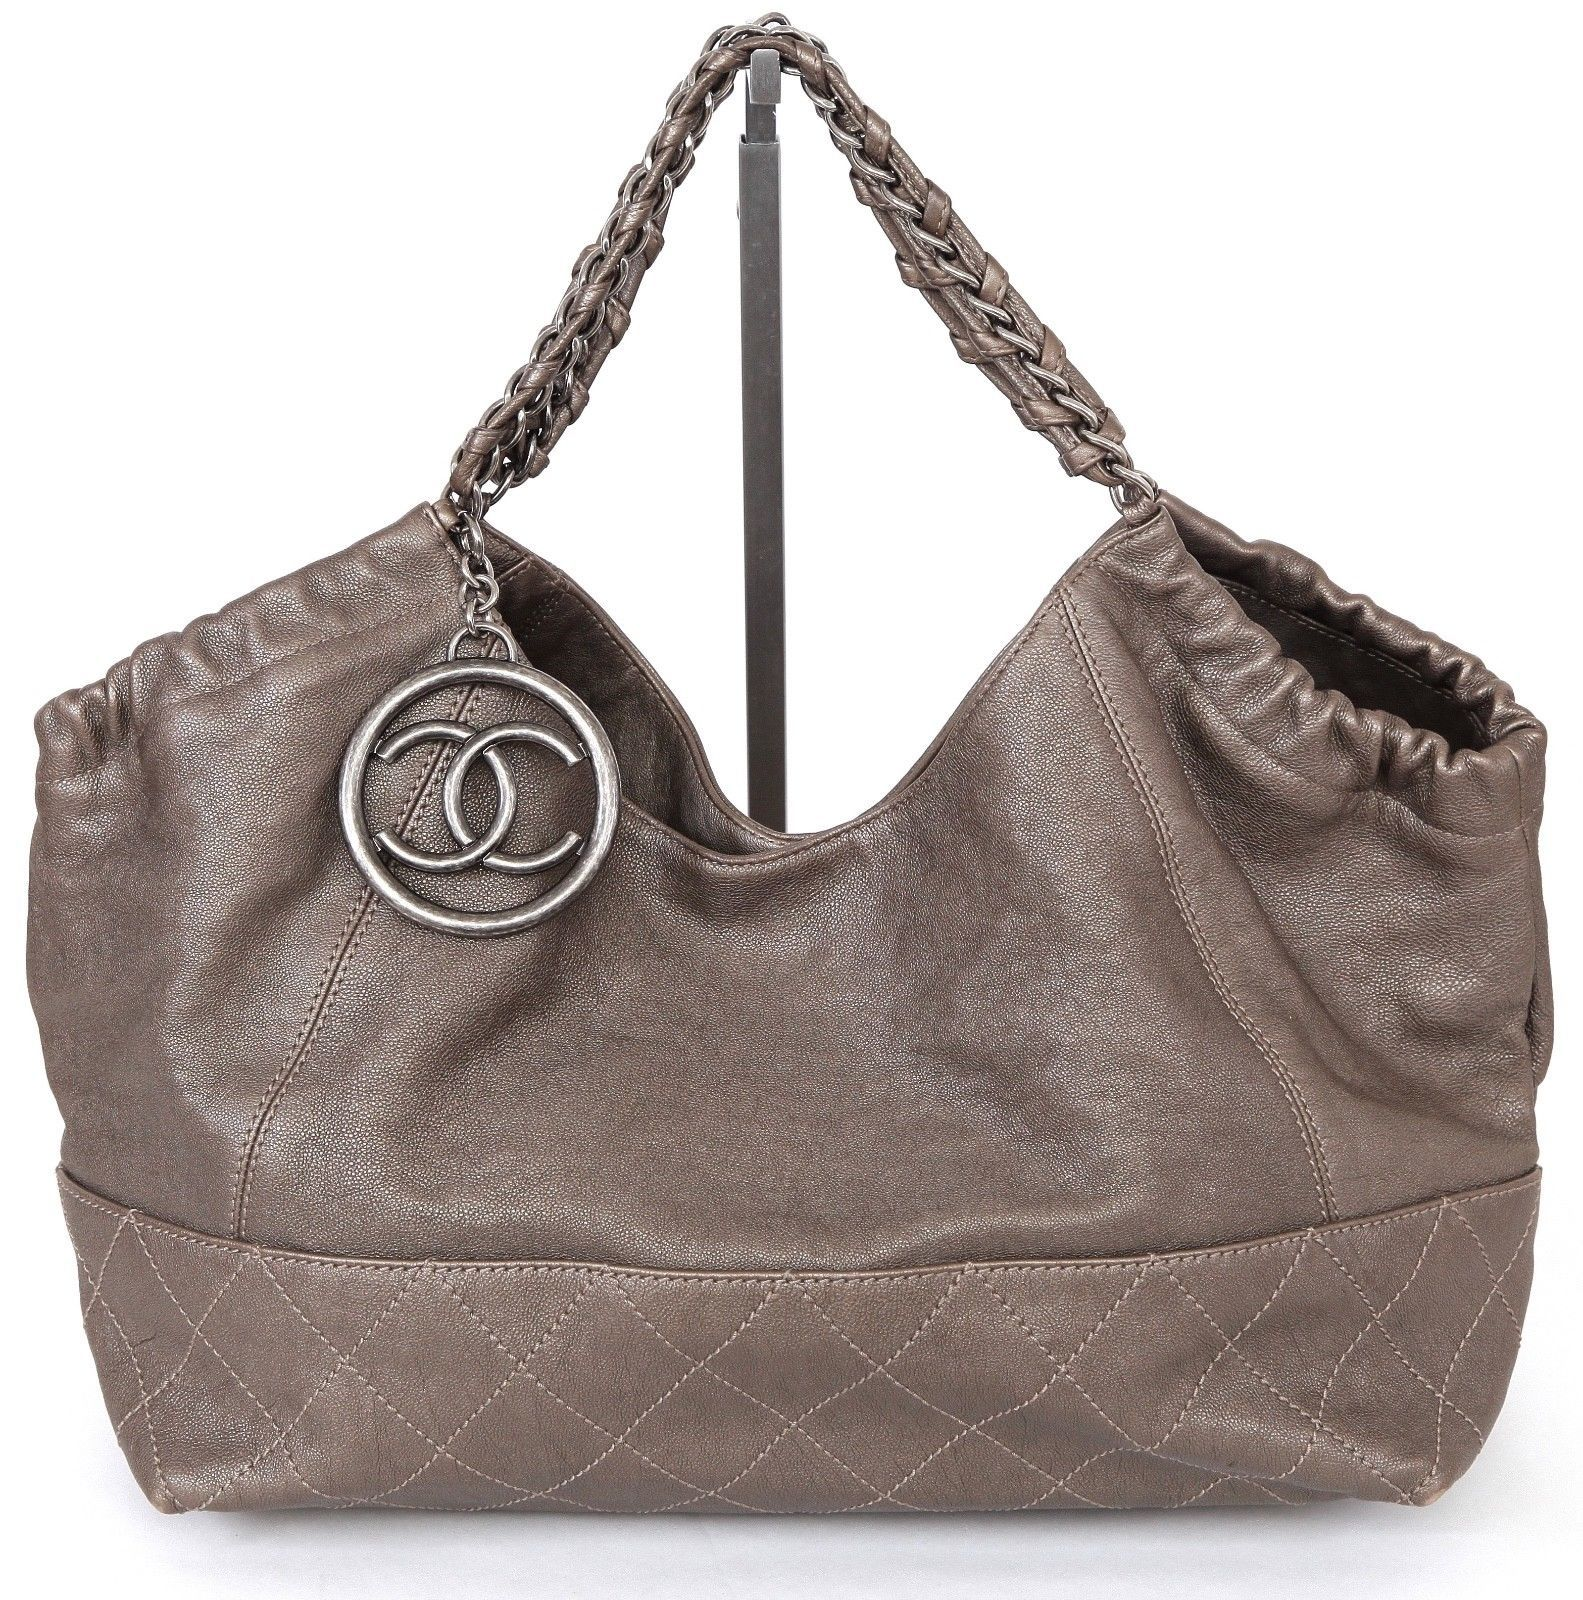 462cce14fd045a Chanel Bag Leather Metallic Coco Cabas Tote and 50 similar items. S l1600